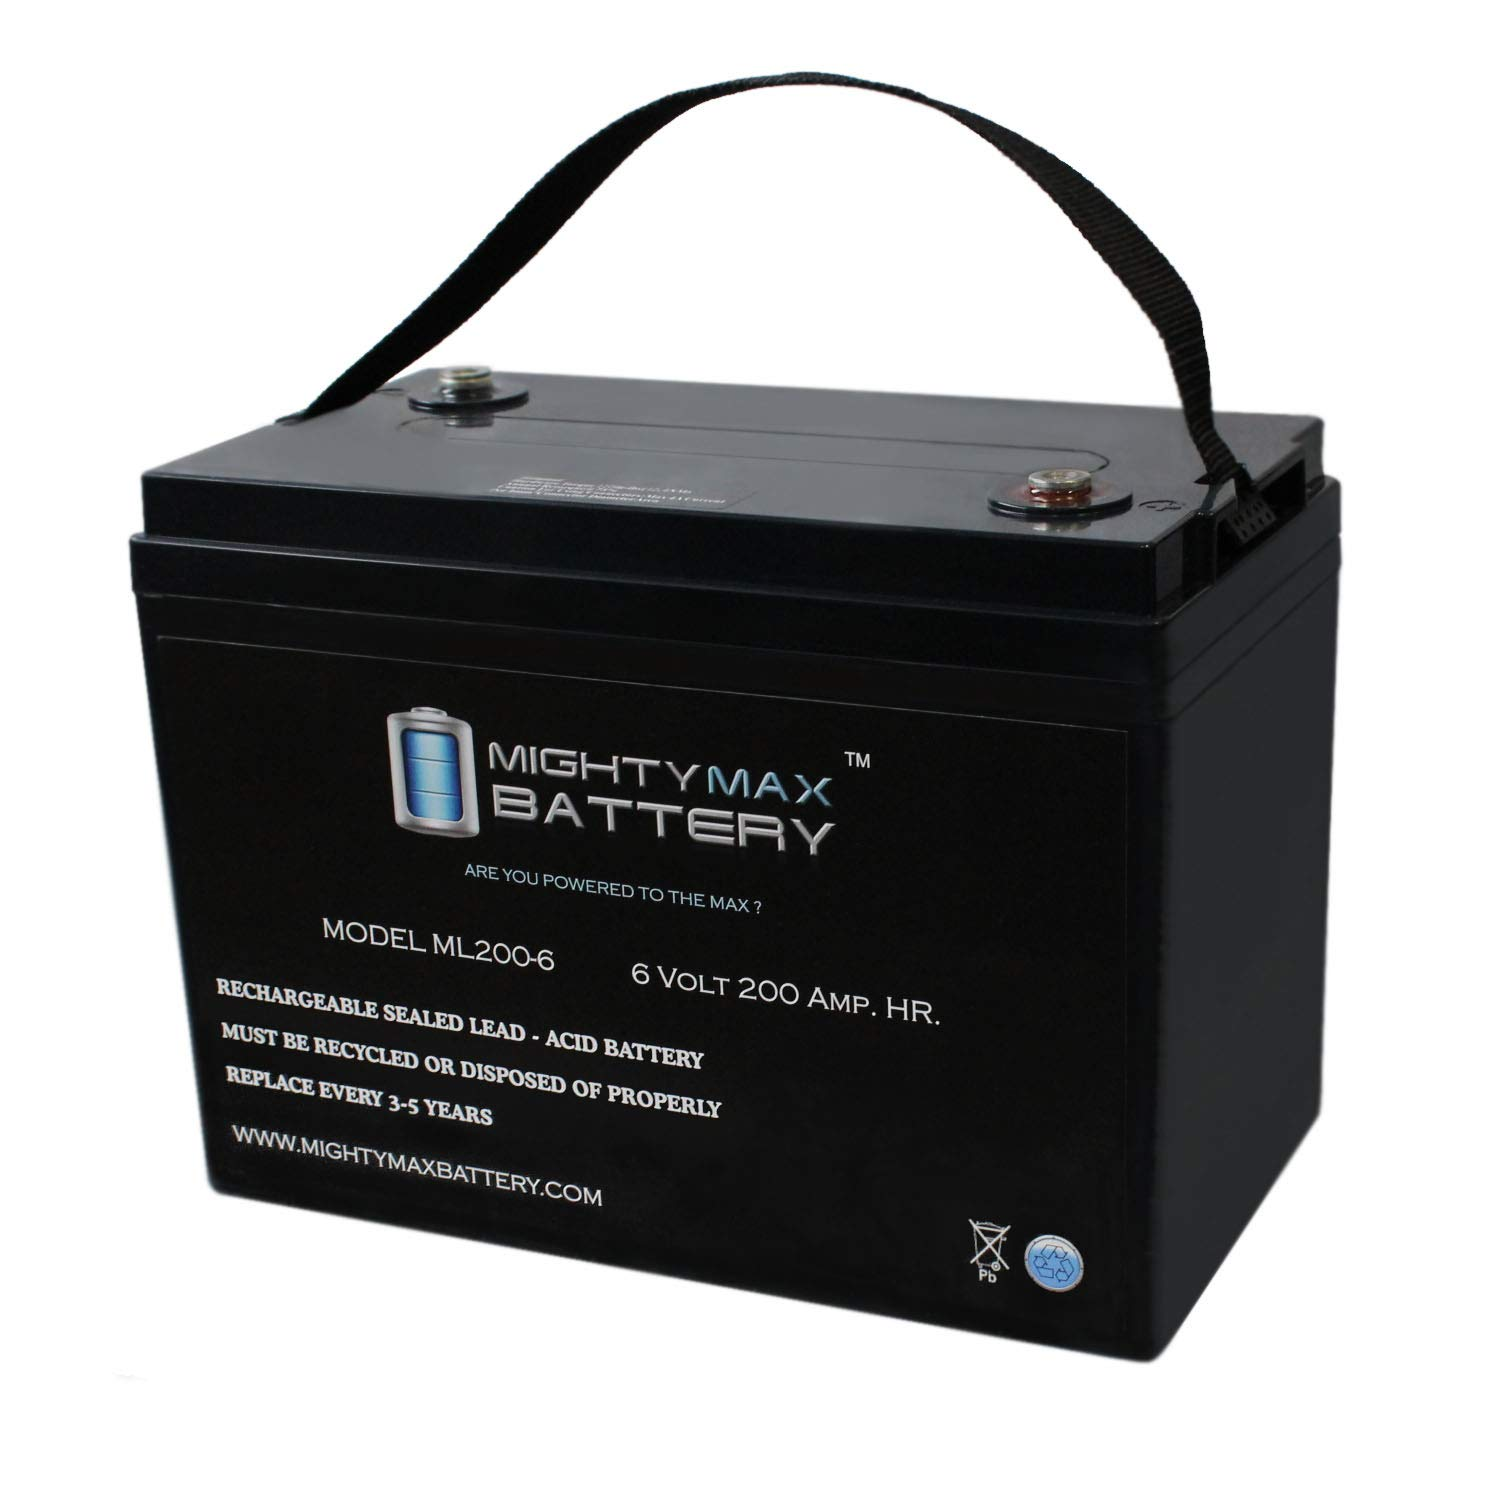 Mighty Max Battery 6V 200AH SLA Battery Replaces Camper Golf Cart RV Boat Solar Wind Brand Product by Mighty Max Battery